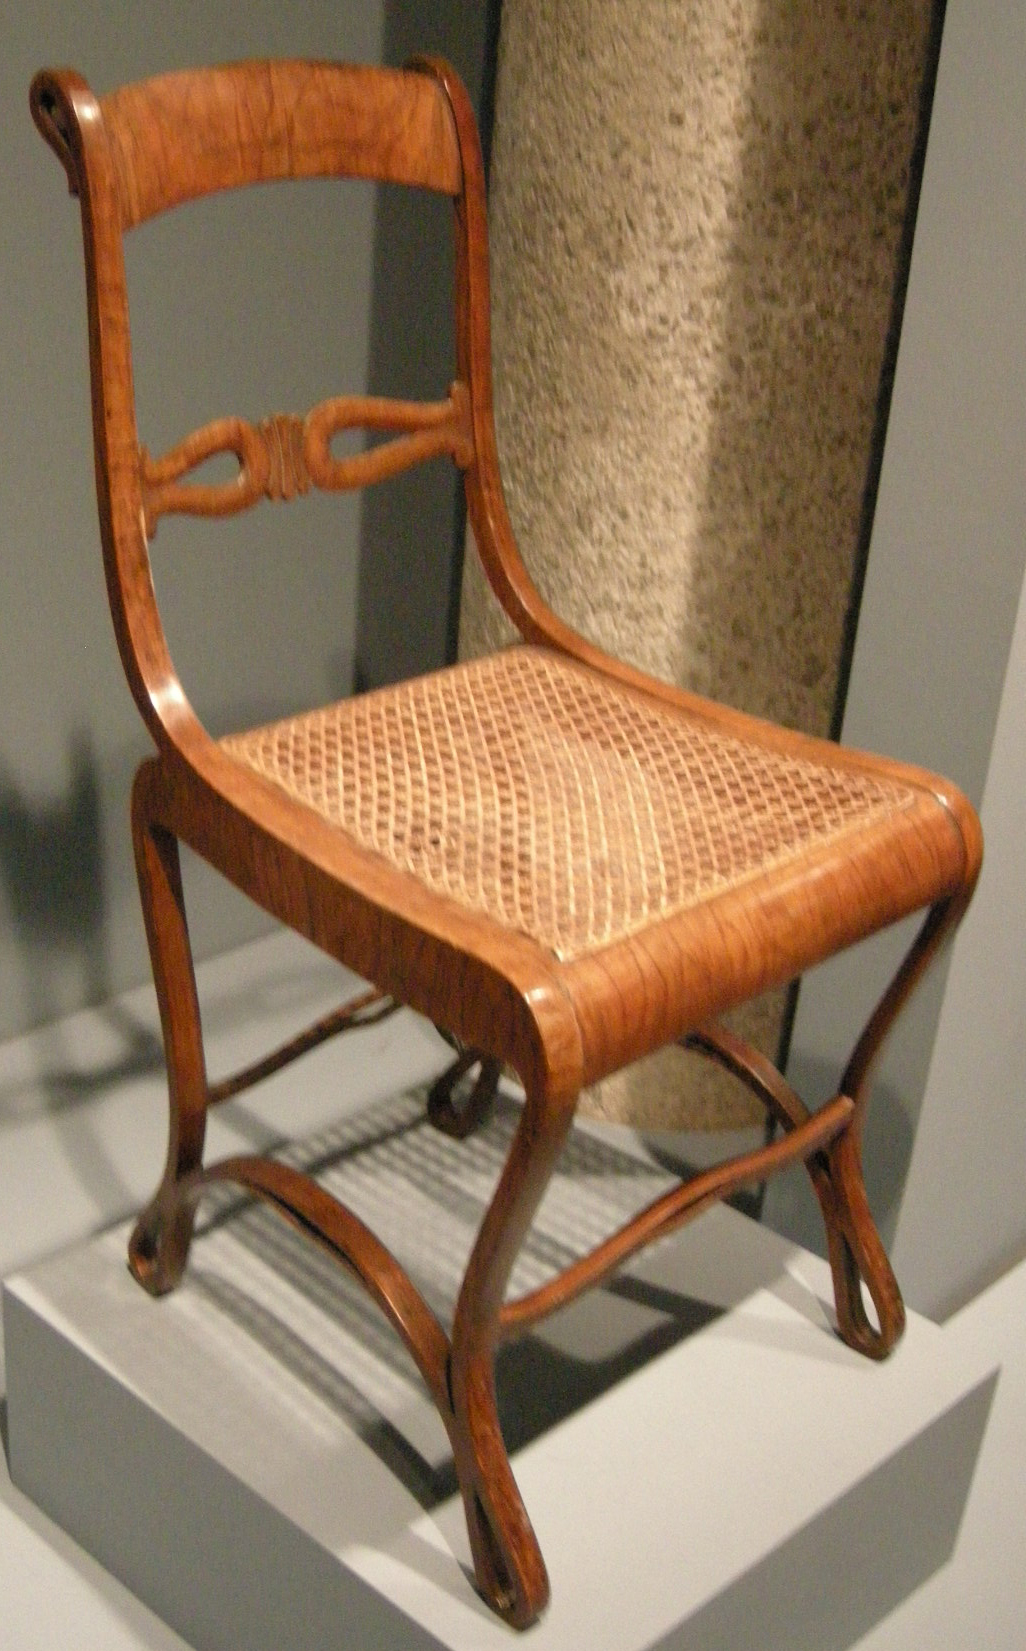 Thonet Michael File Michael Thonet Sedia 1836 40 Jpg Wikimedia Commons